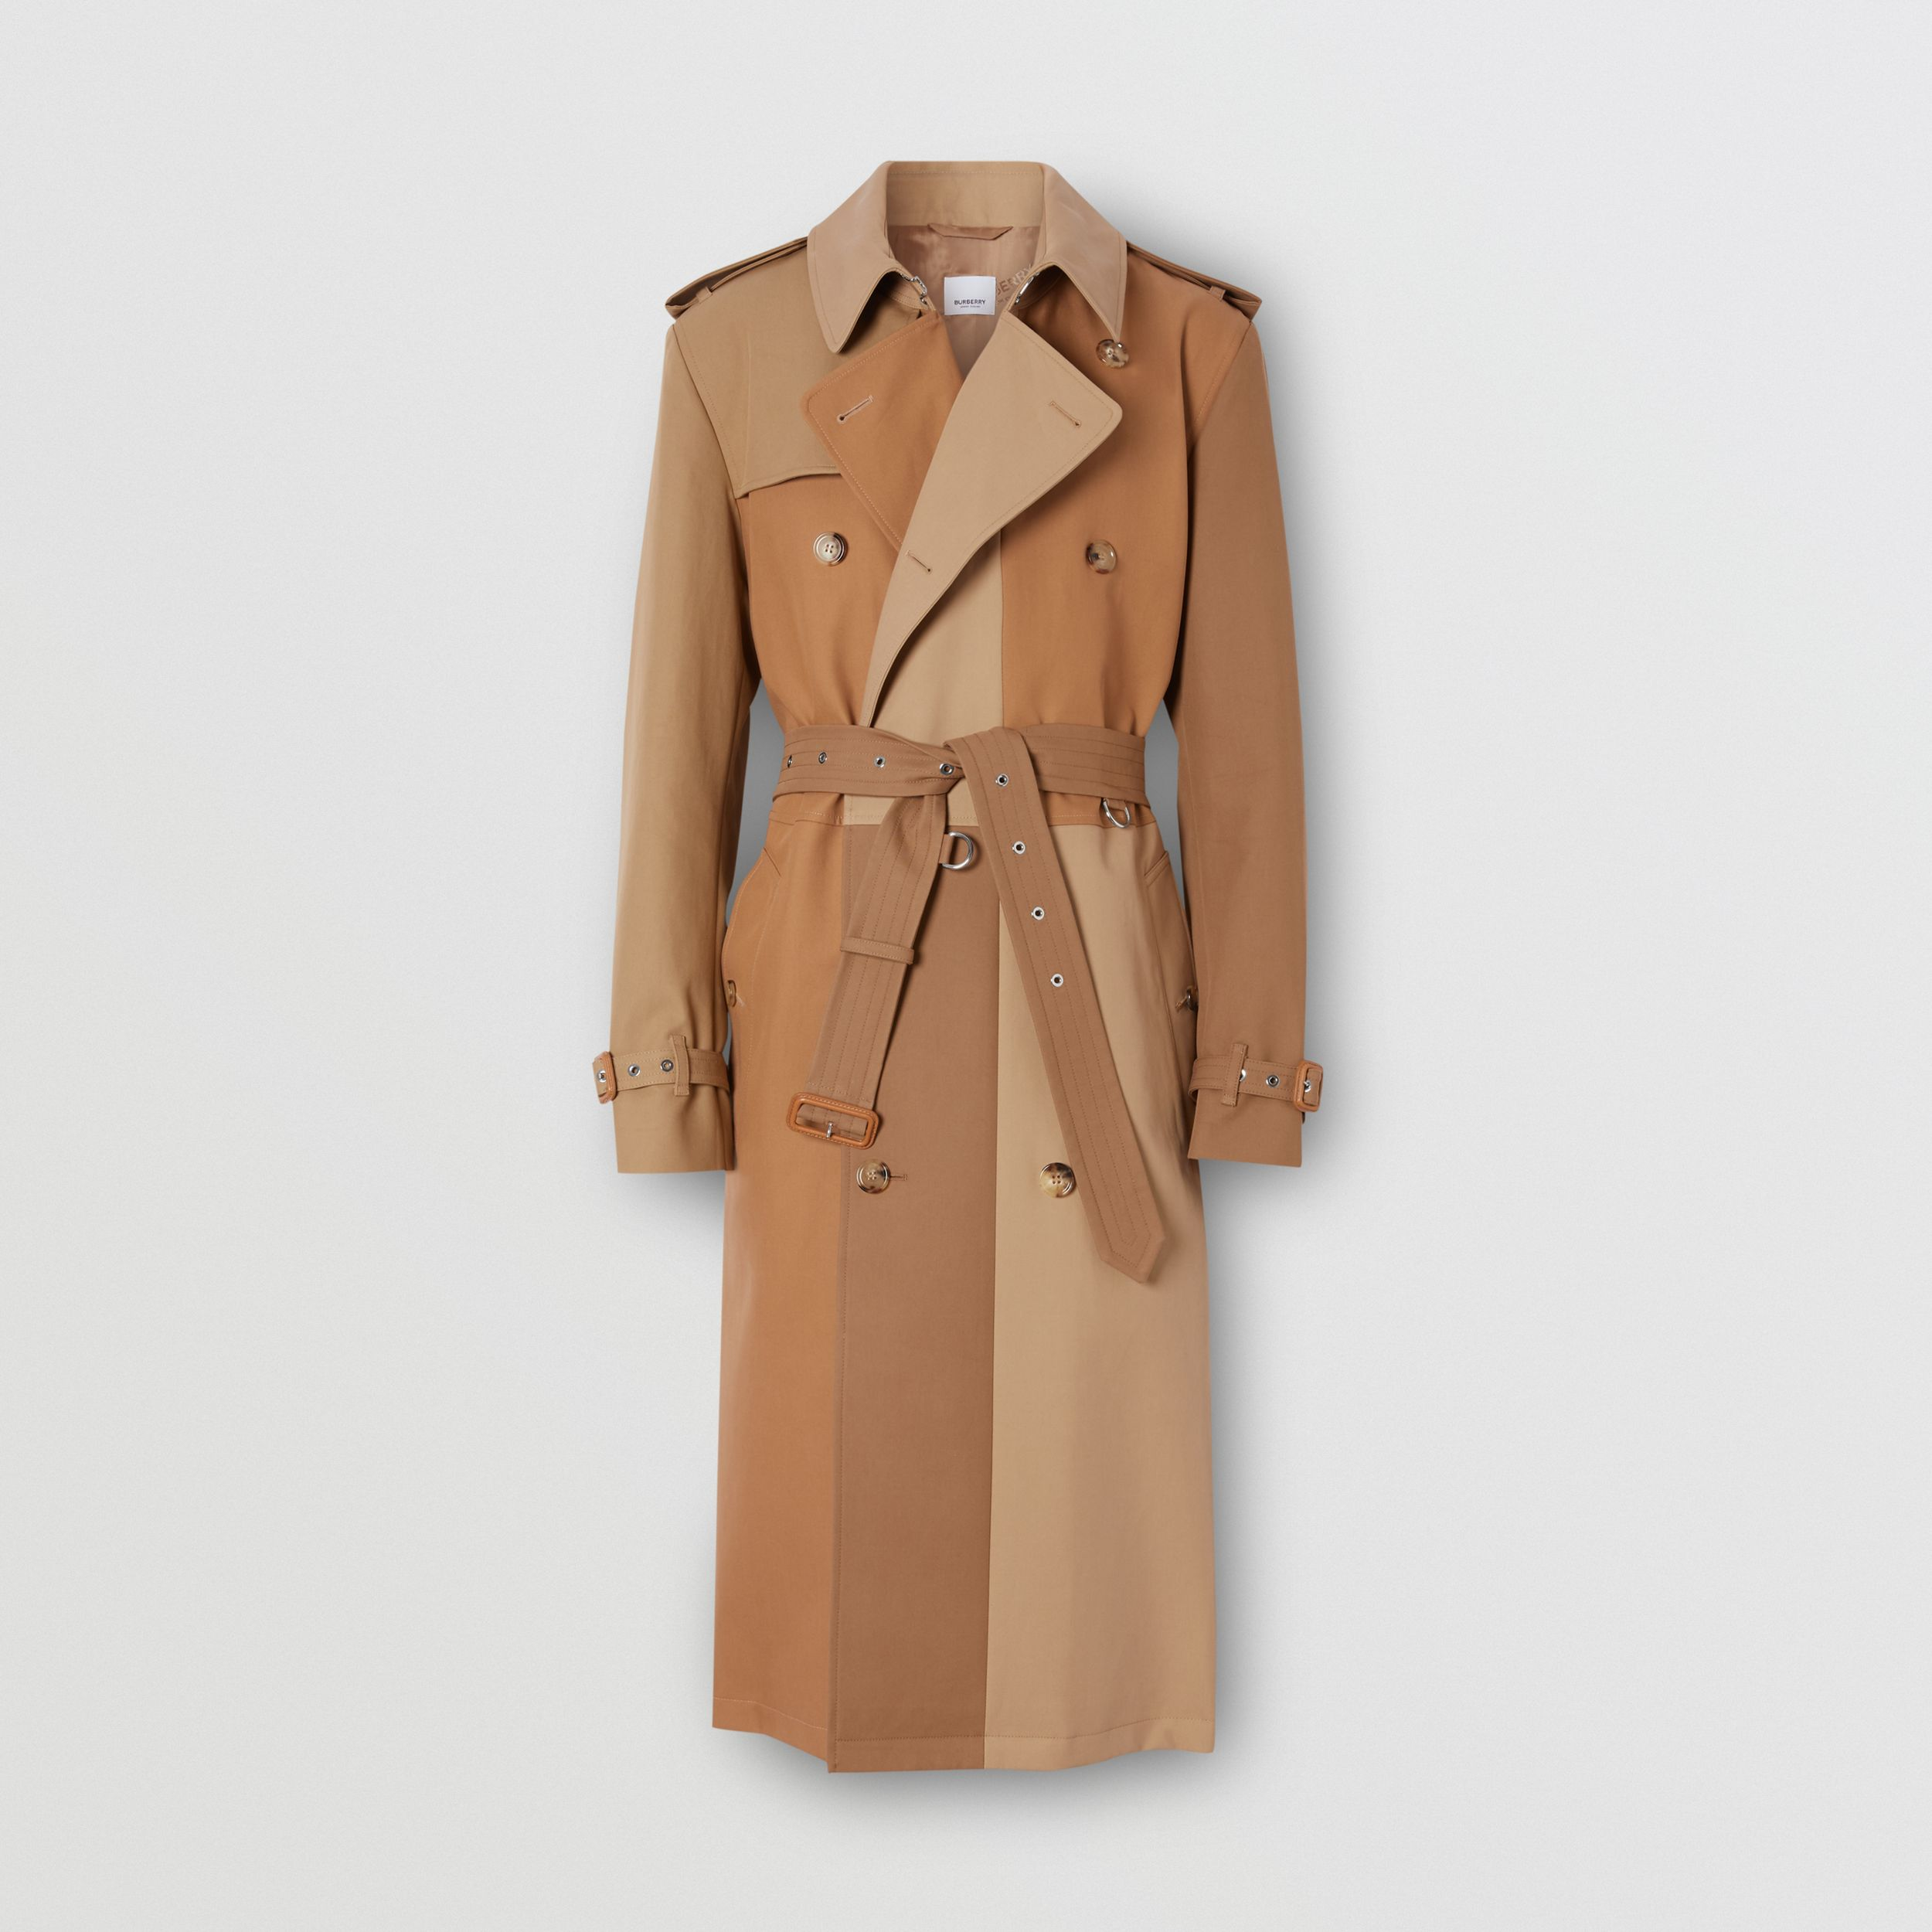 Panelled Cotton Trench Coat in Warm Camel - Men | Burberry United Kingdom - 4